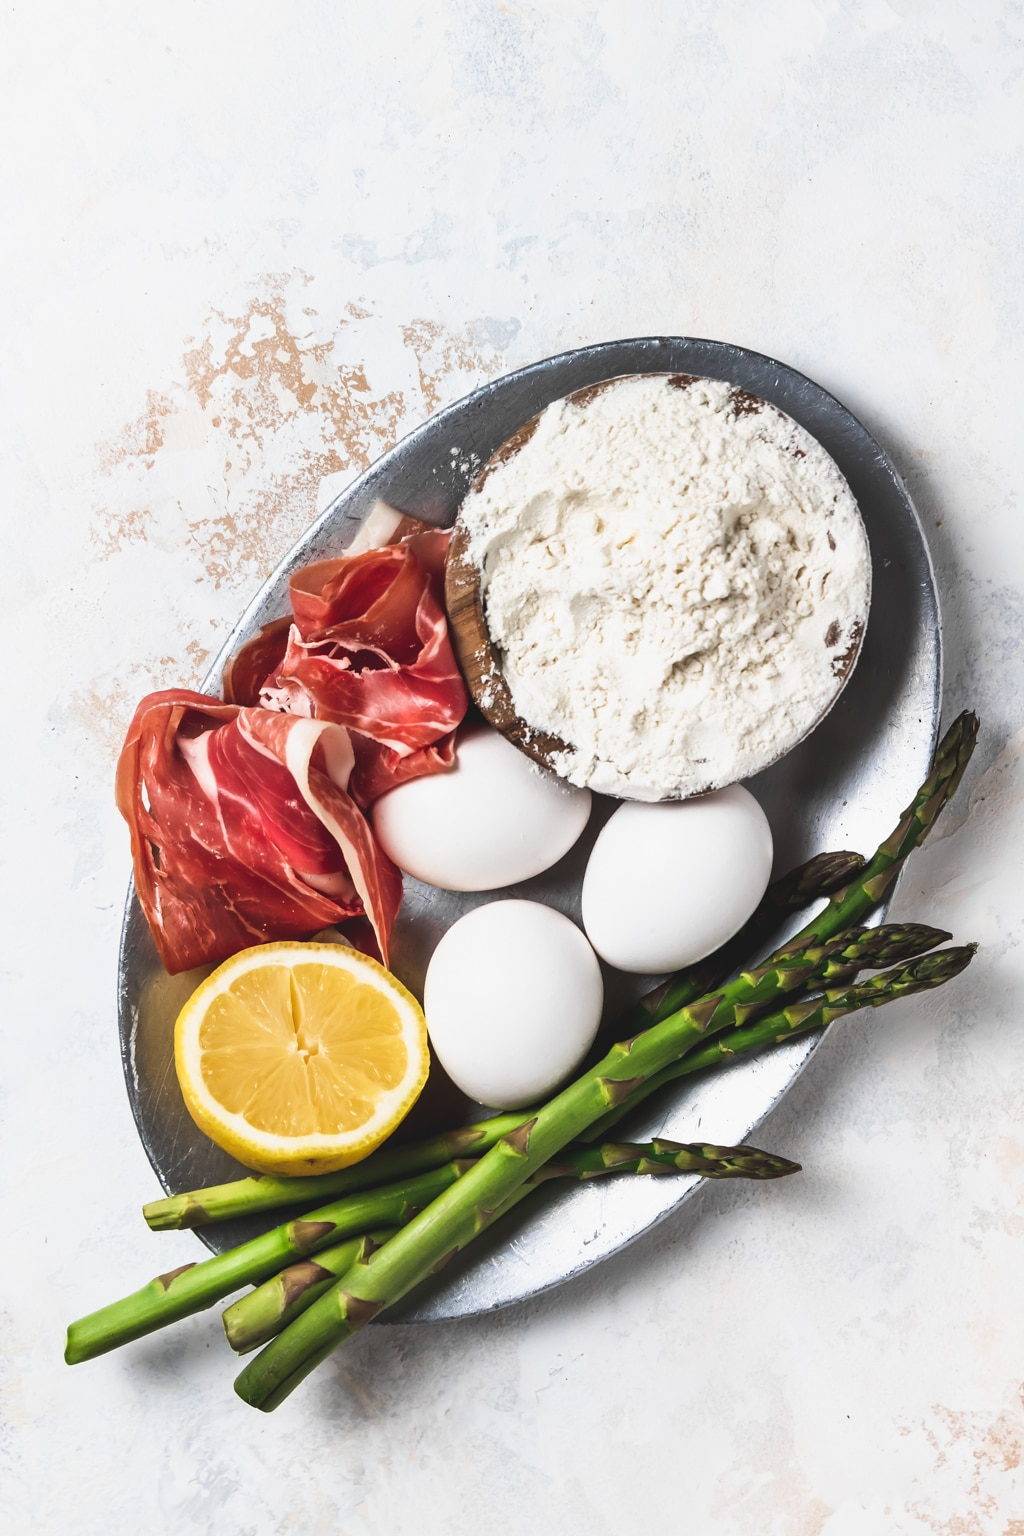 silver plate with flour, eggs, lemon, asparagus, and prosciutto